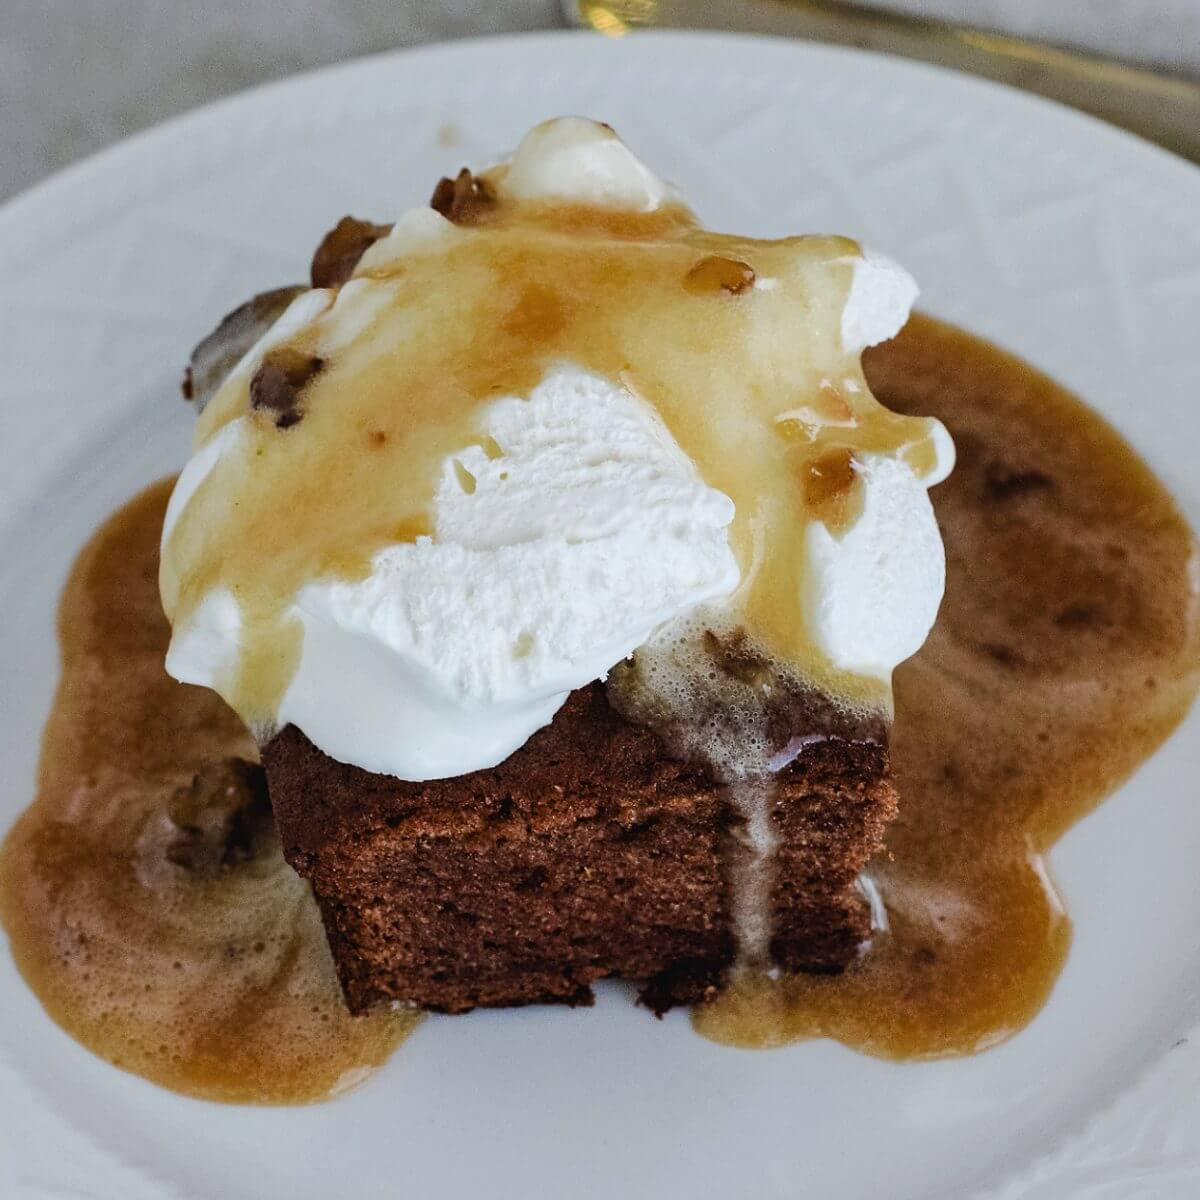 Persimmon pudding with whipped cream and a caramel pecan sauce over it